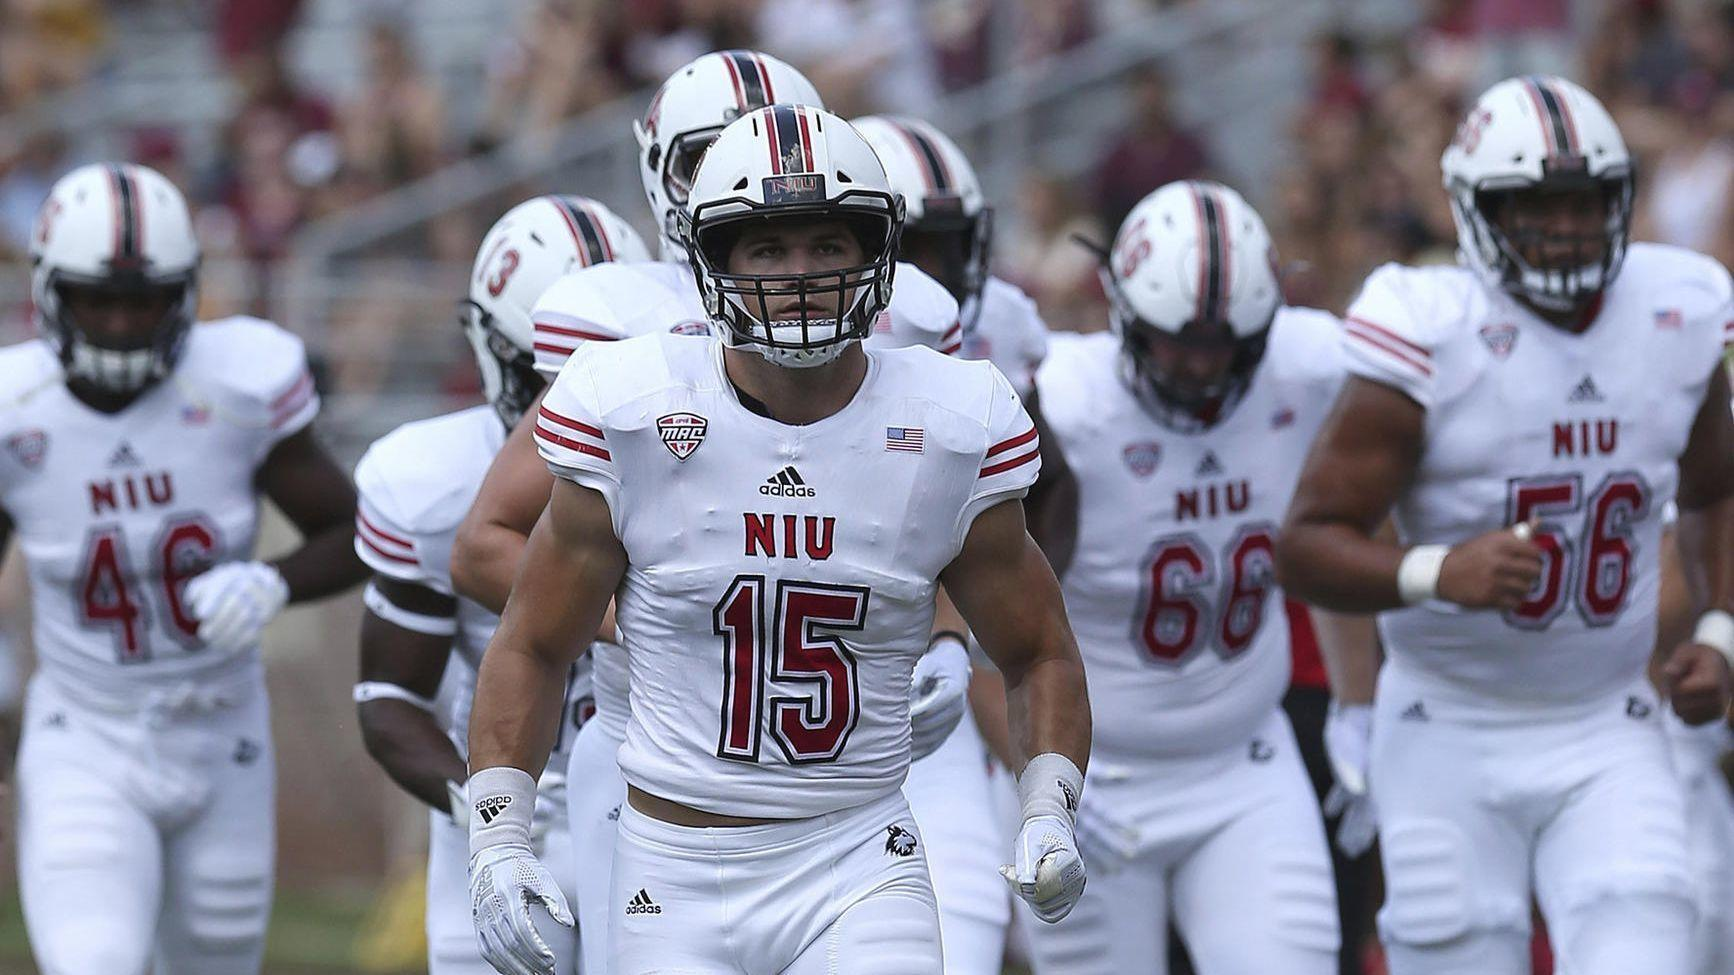 Northern Illinois to play at Notre Dame in football in 2024; Huskies and Irish have never met